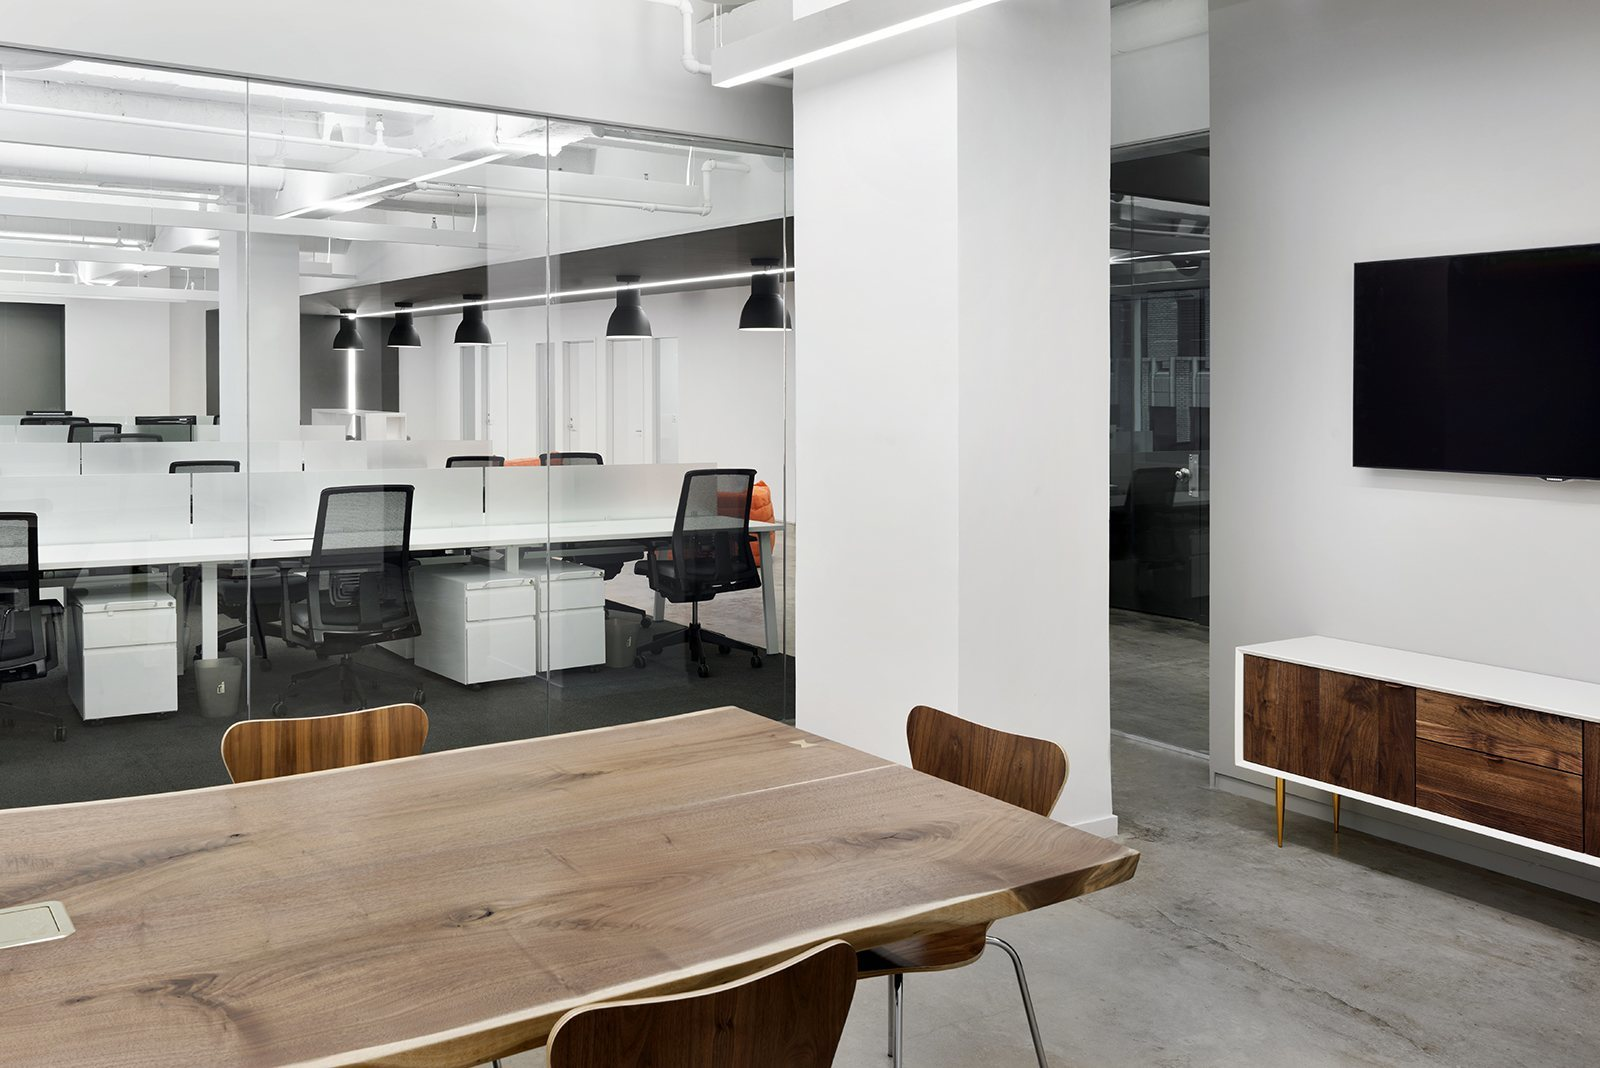 vox-media-nyc-office-6